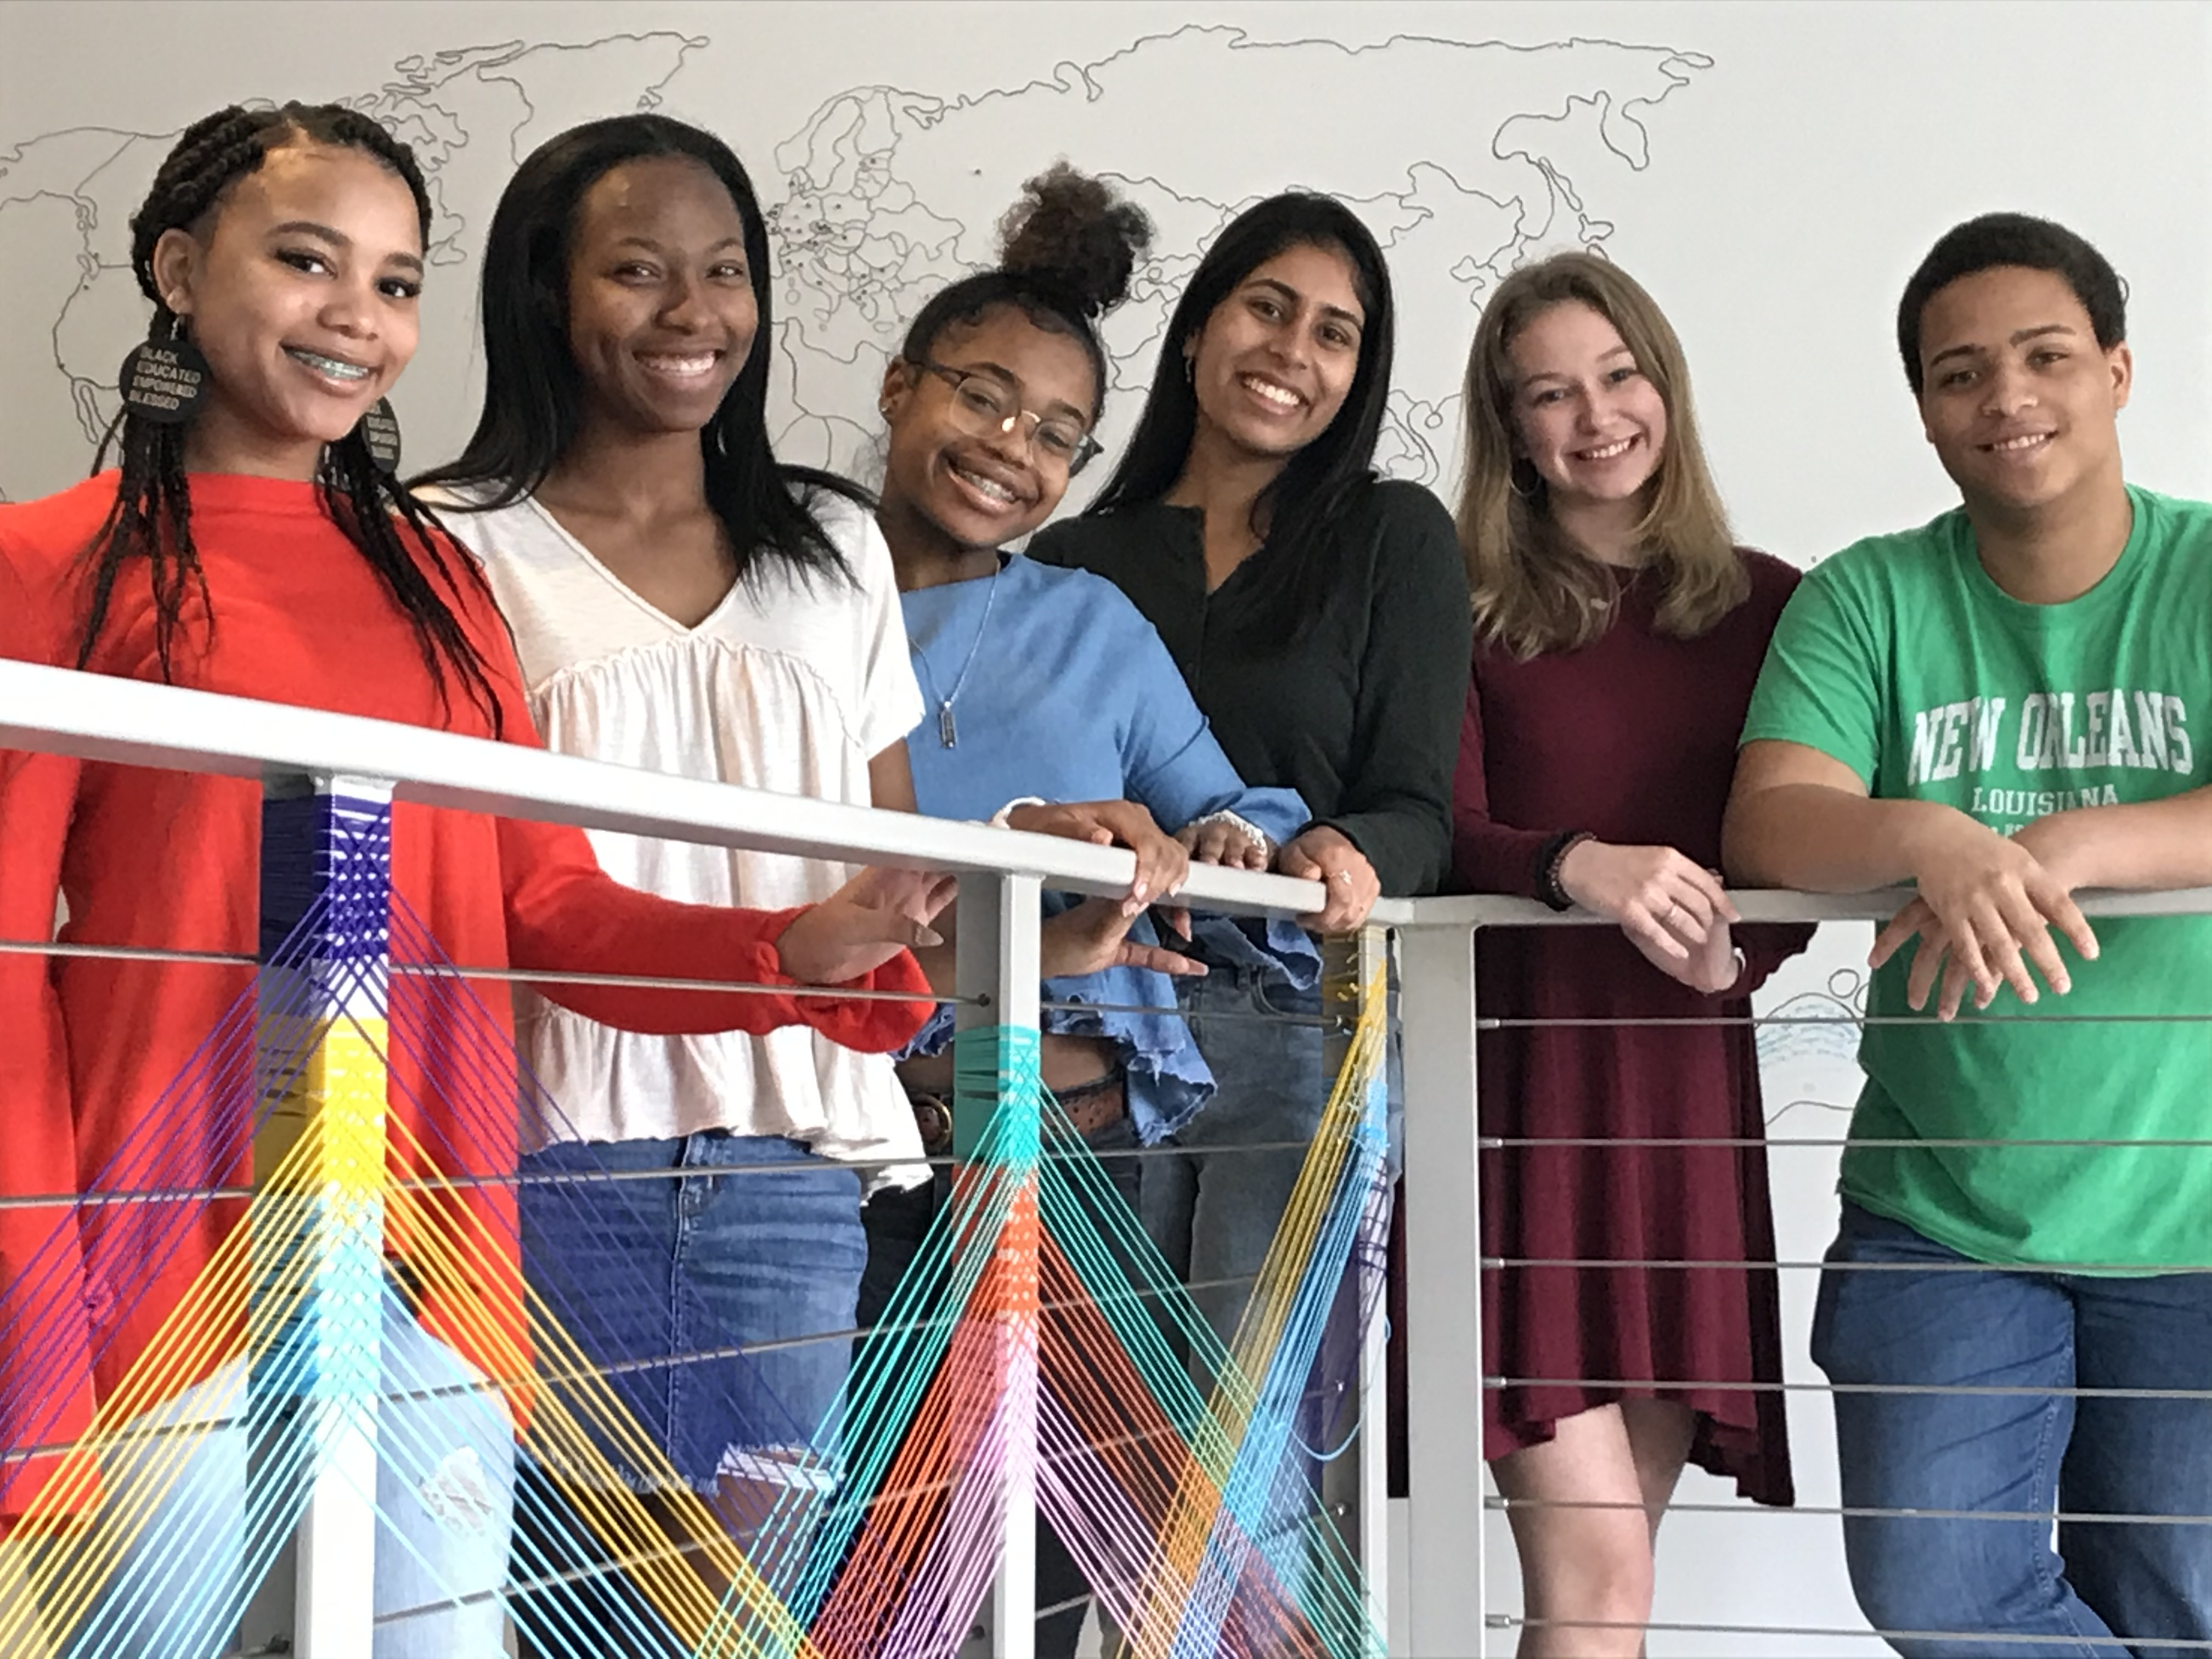 Pictured (left to right) are members of the Raleigh Charter High School Freedom Struggle Committee: Sammi Tucker, Allison Jemerson, Ny Williams, Saadhvi Mamidi, Kelly Blackman and Richie Bryant.